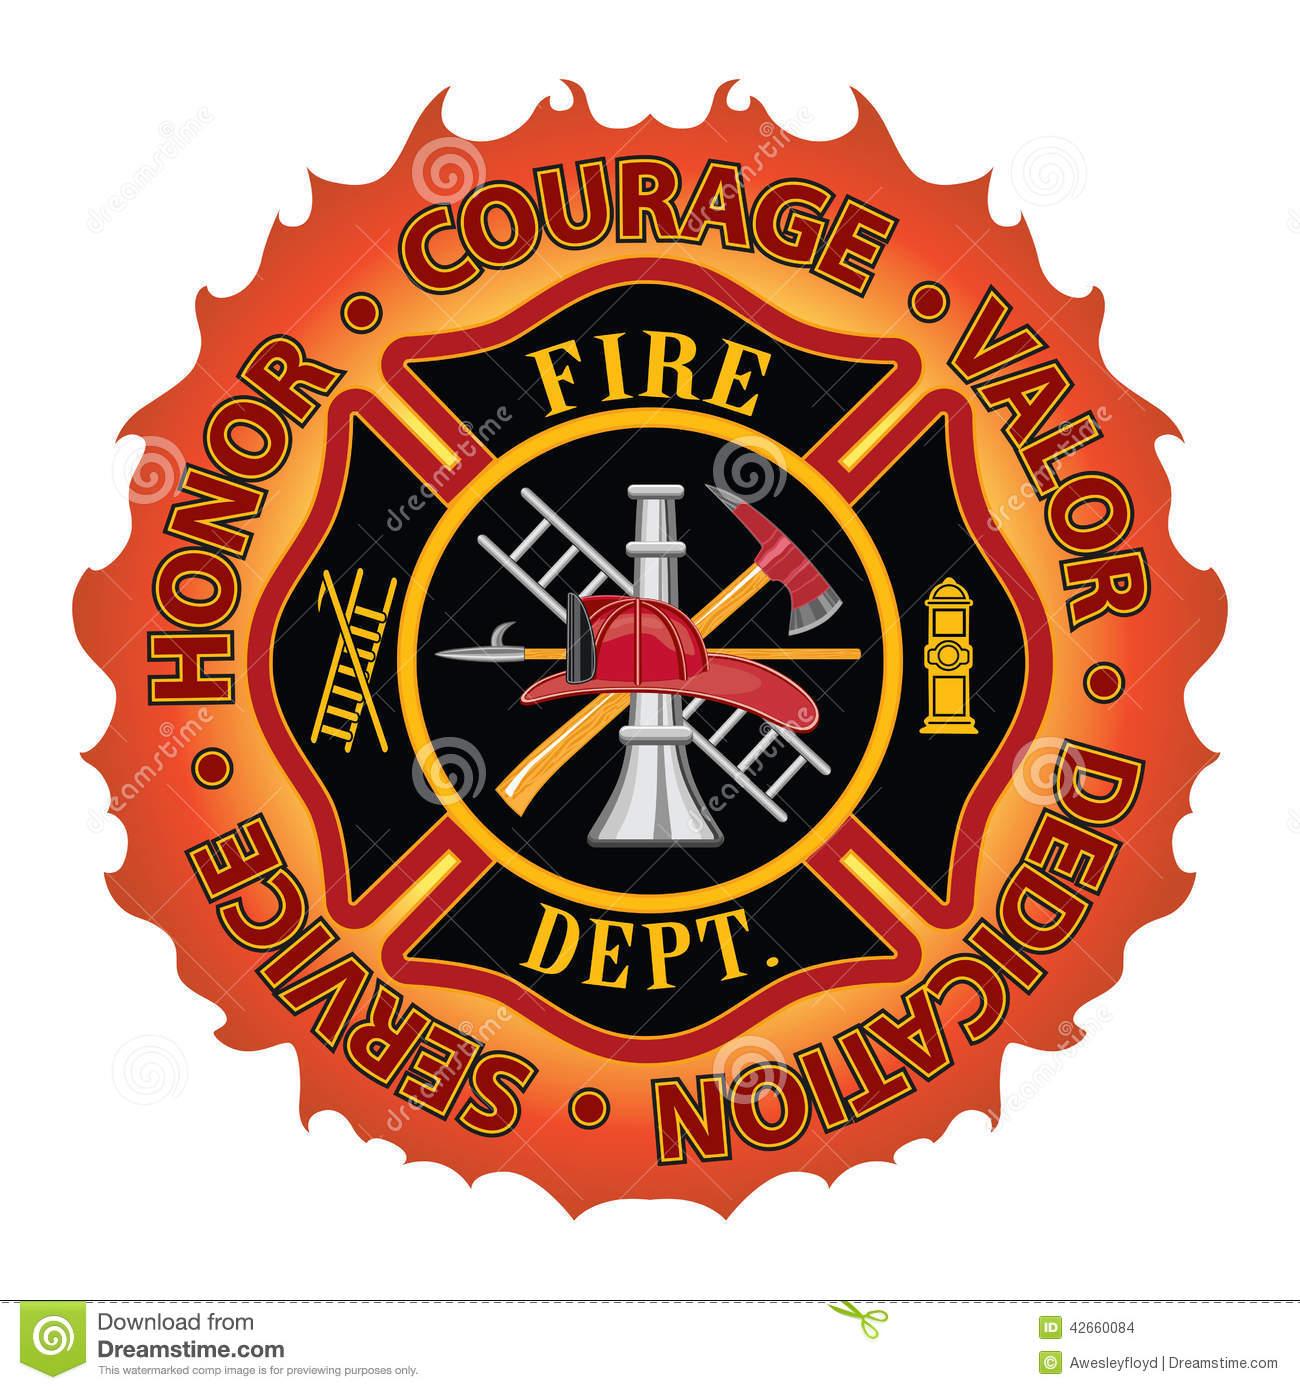 Firefighter honor courage valor stock vector illustration of firefighter honor courage valor biocorpaavc